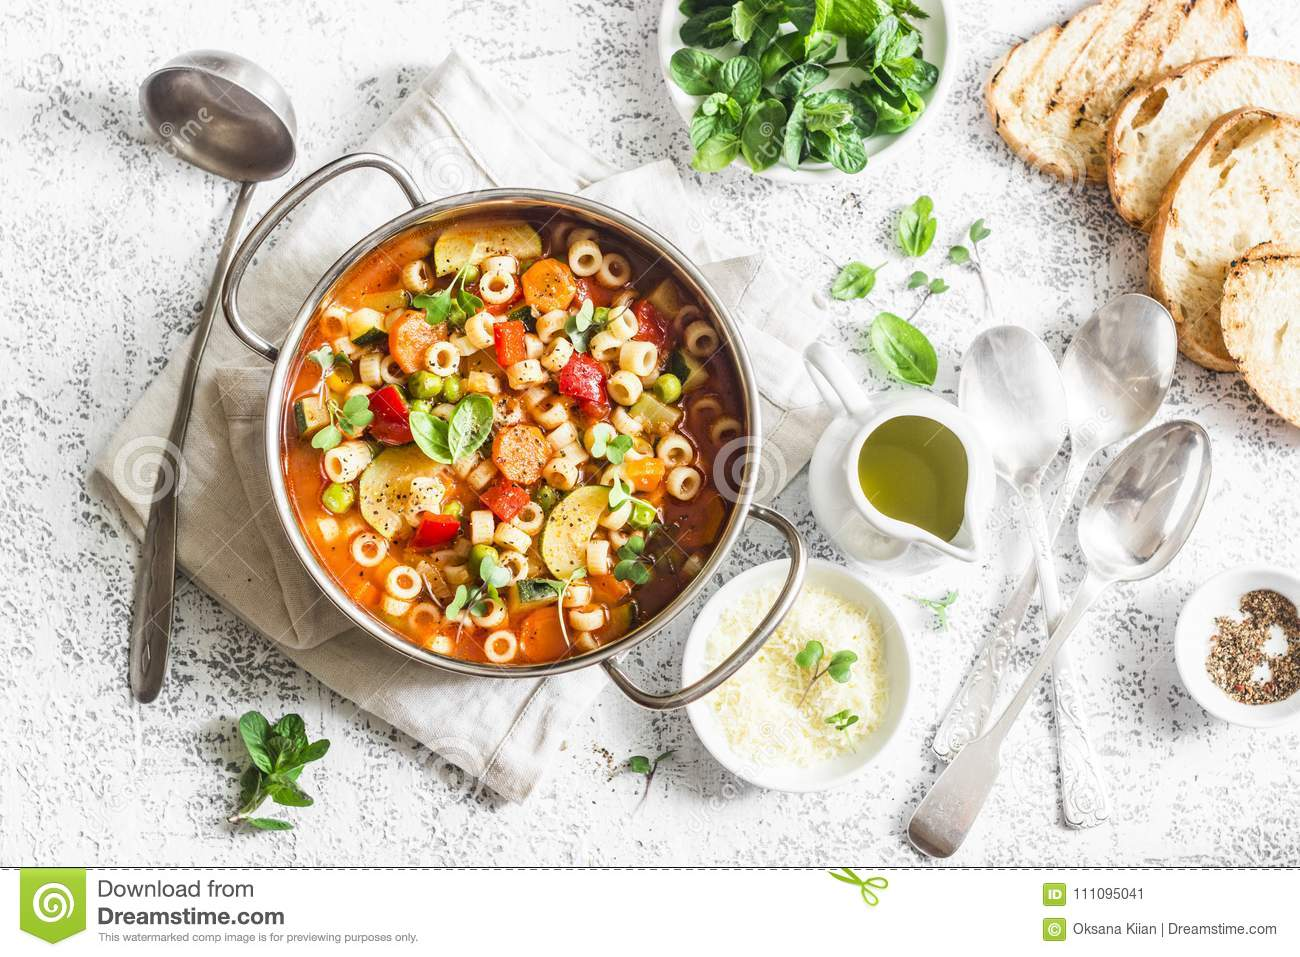 Minestrone soup in a pan on a light table, top view. Italian soup with pasta and seasonal vegetables. Delicious vegetarian food co